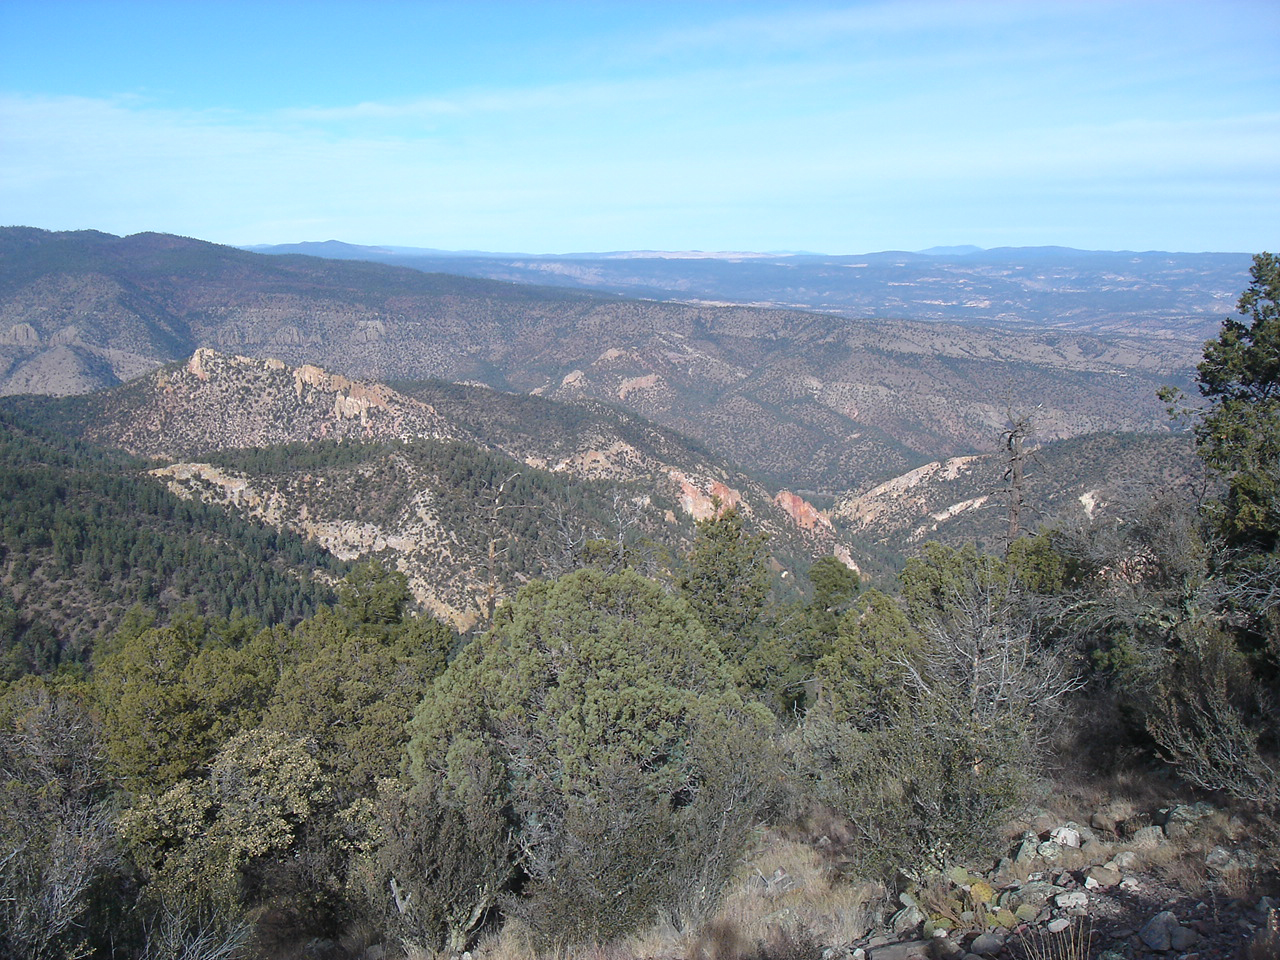 December 15, Gila Wilderness, NM